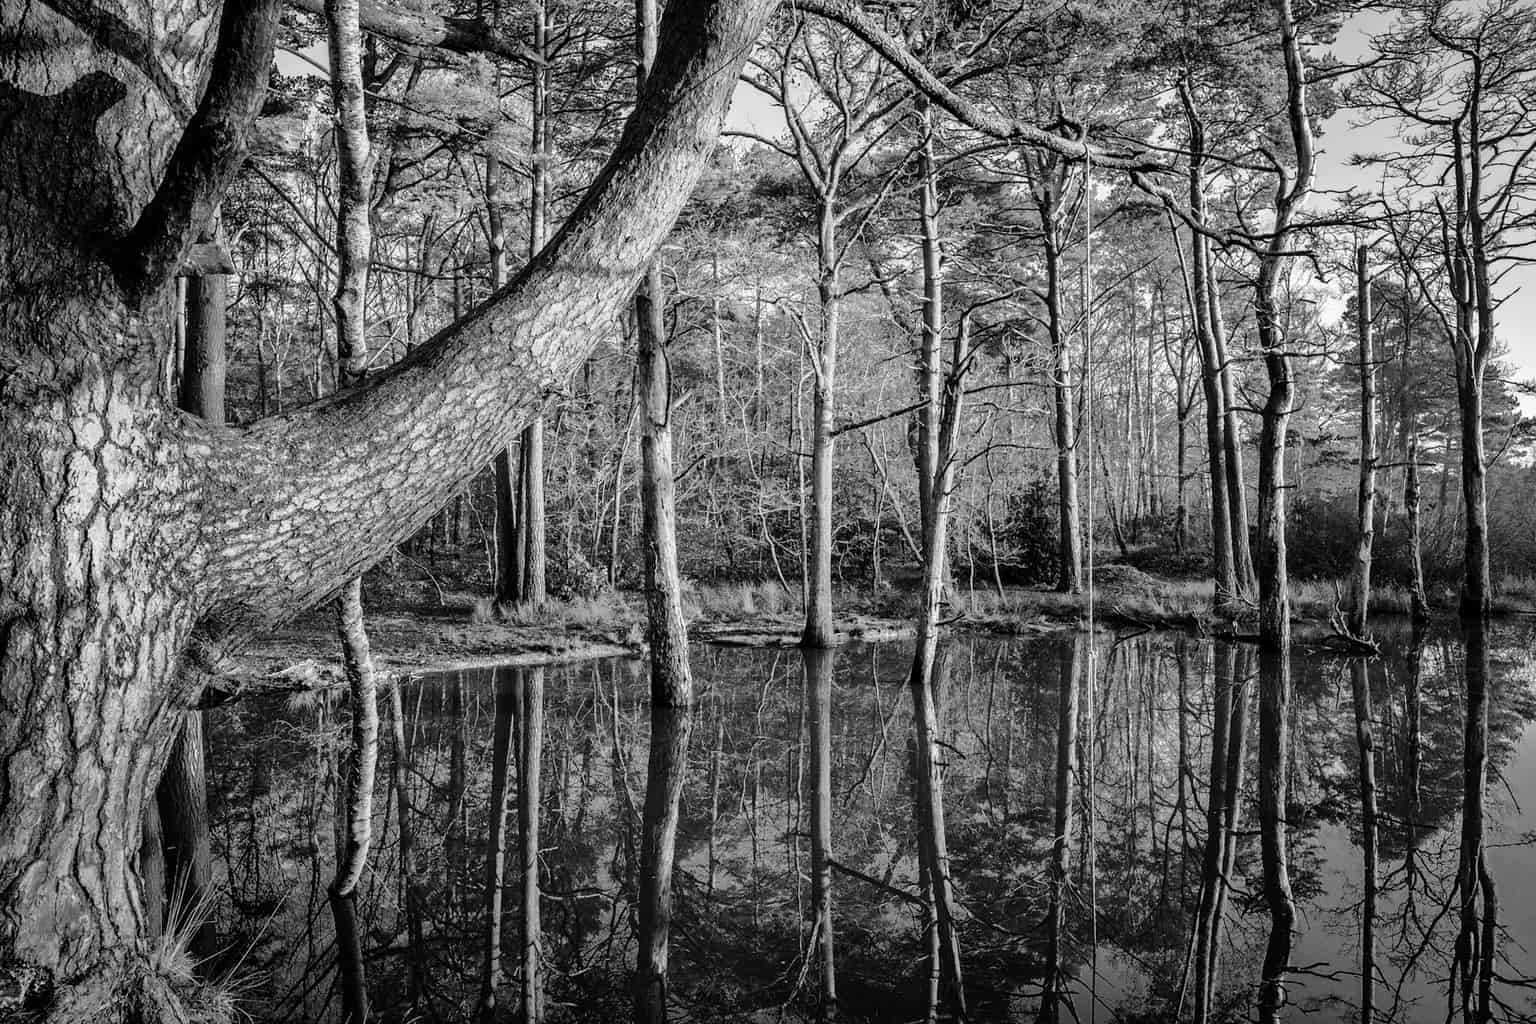 Delph Woods, Poole - black and white landscpe photography in Dorset